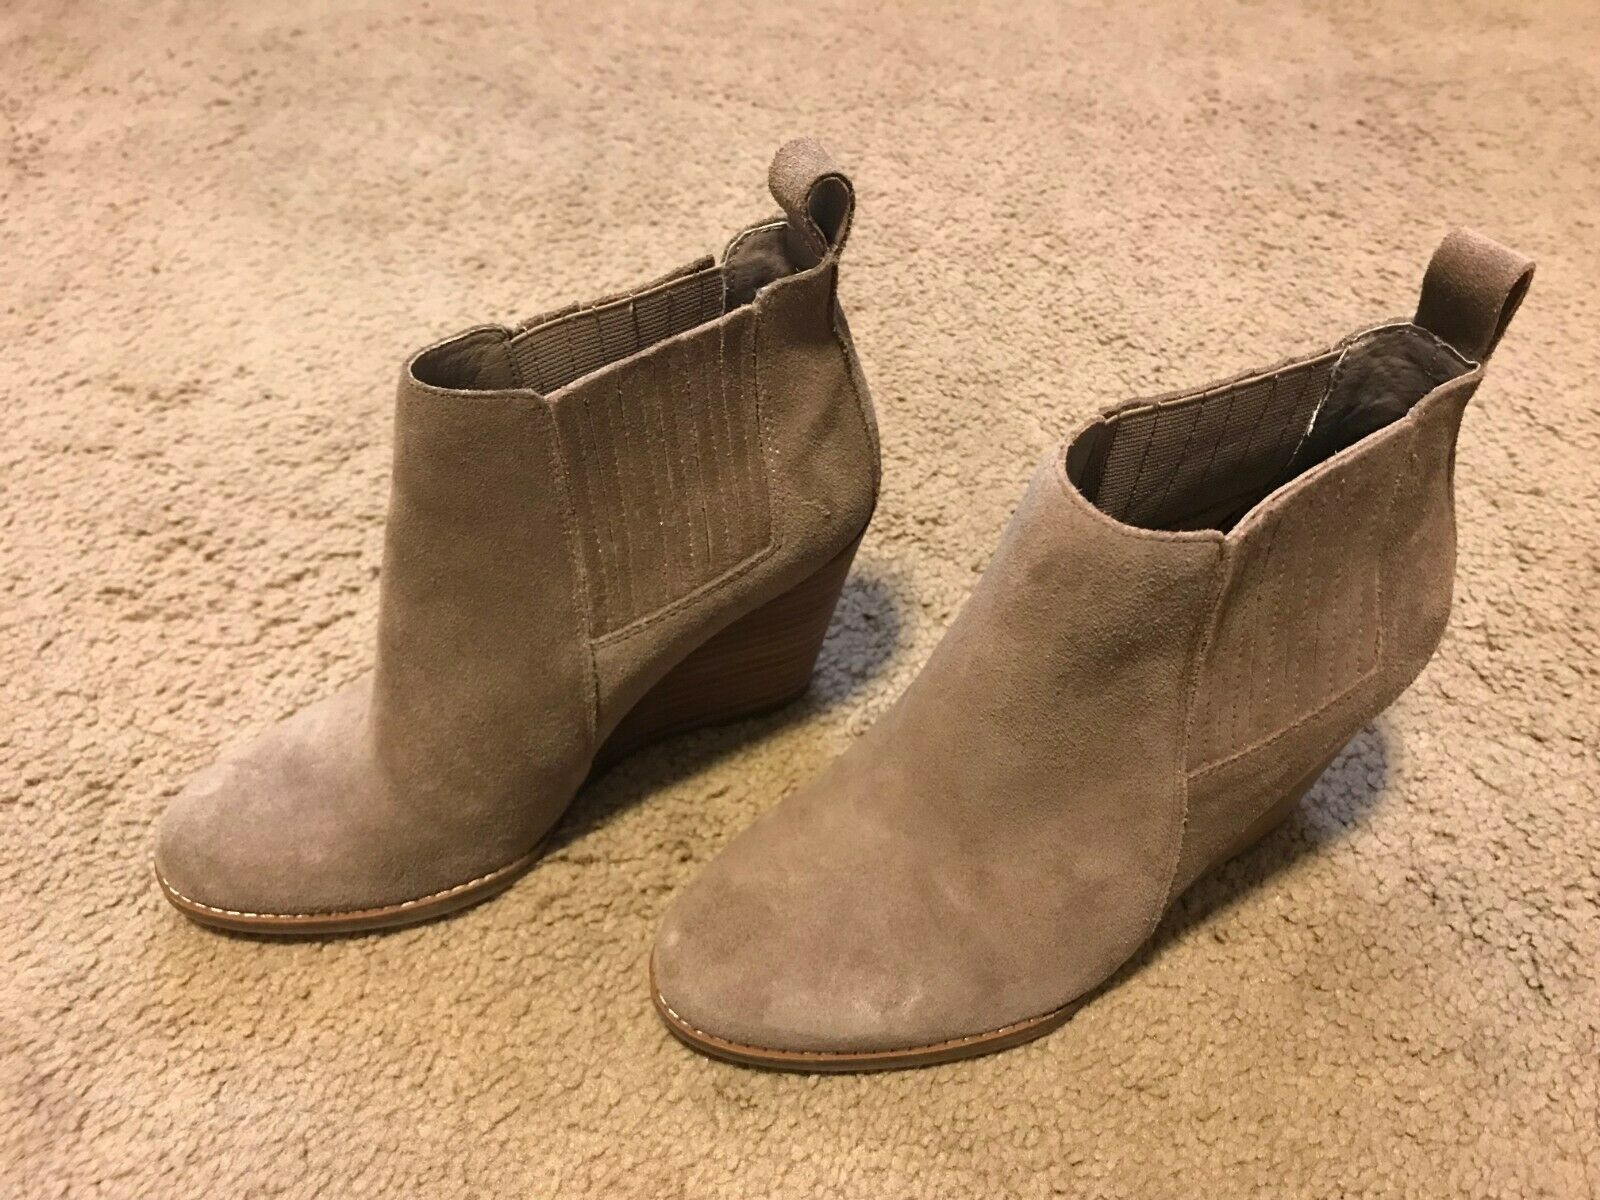 Jessica Simpson Women's Carolynn Slater Taupe Oiled Suede 7M